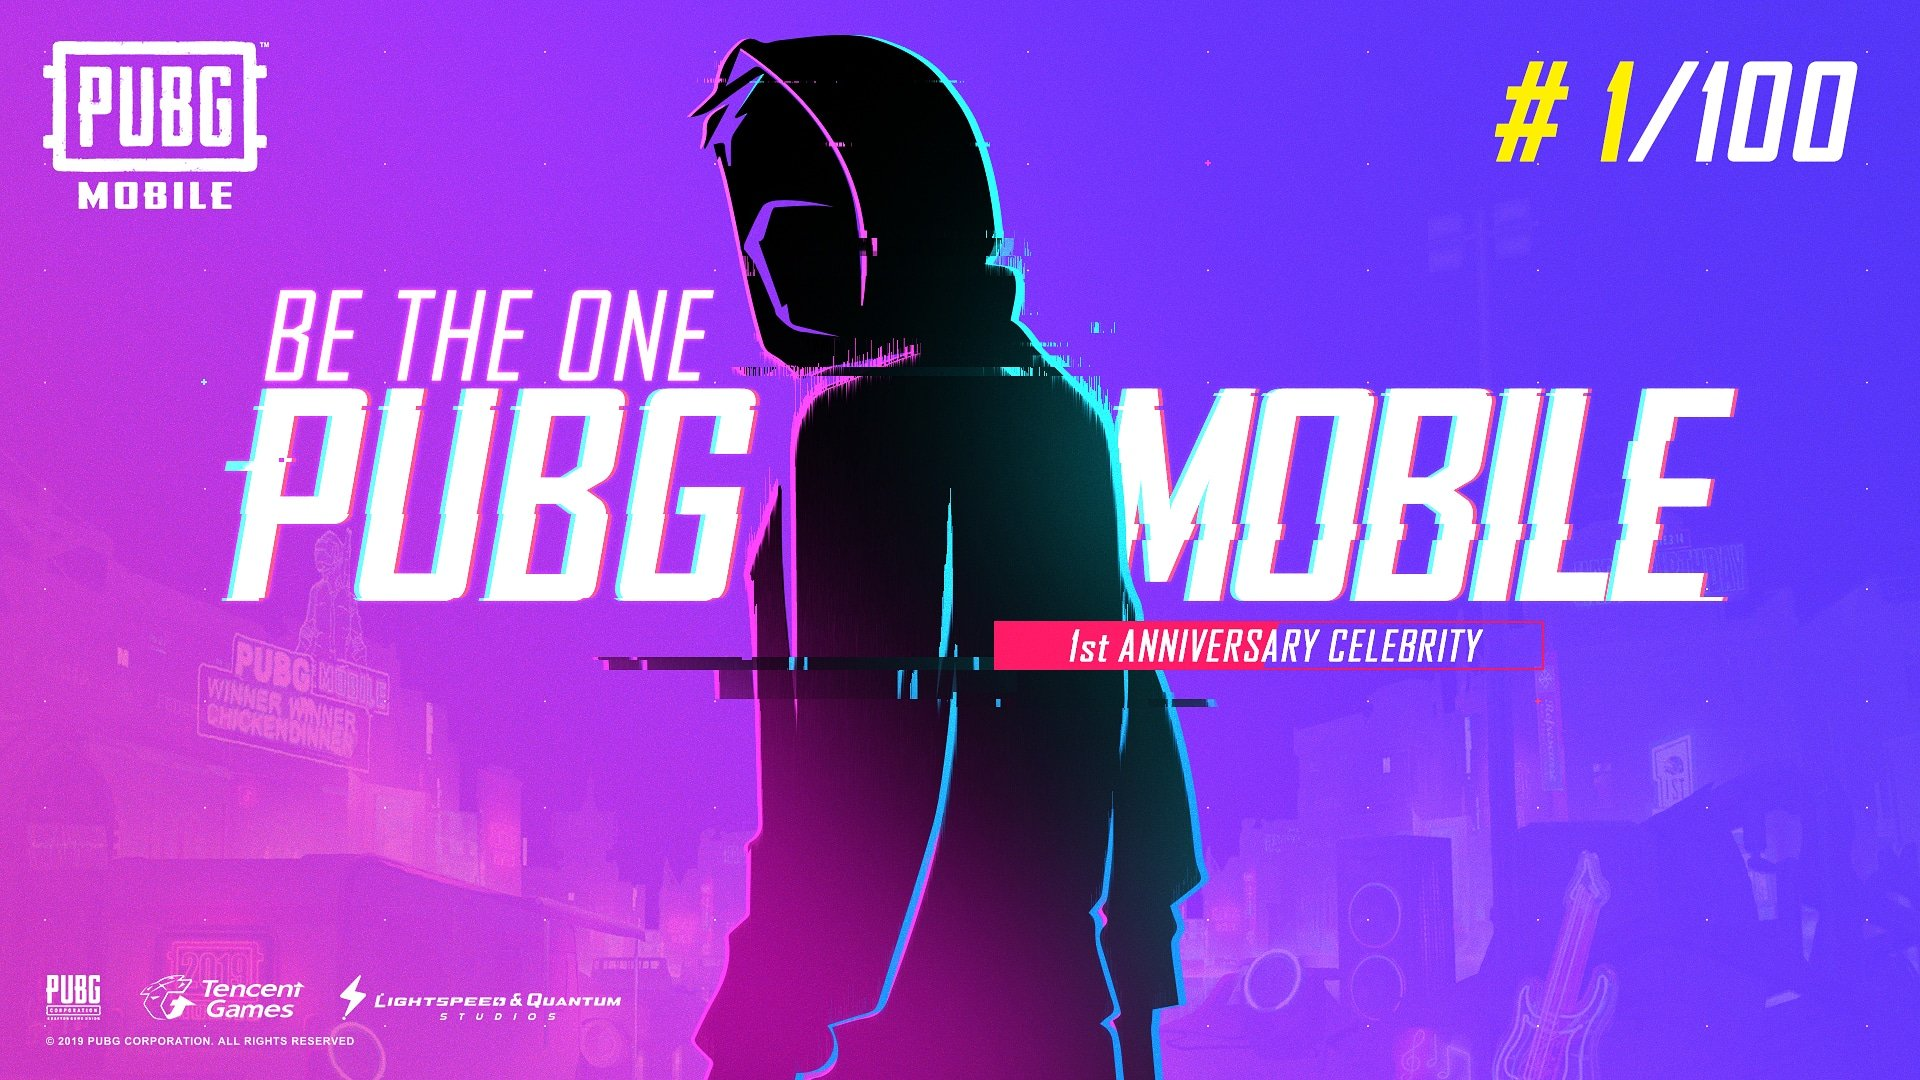 Pubg Mobile Birthday Event Begins On March 20th When The New Ranked